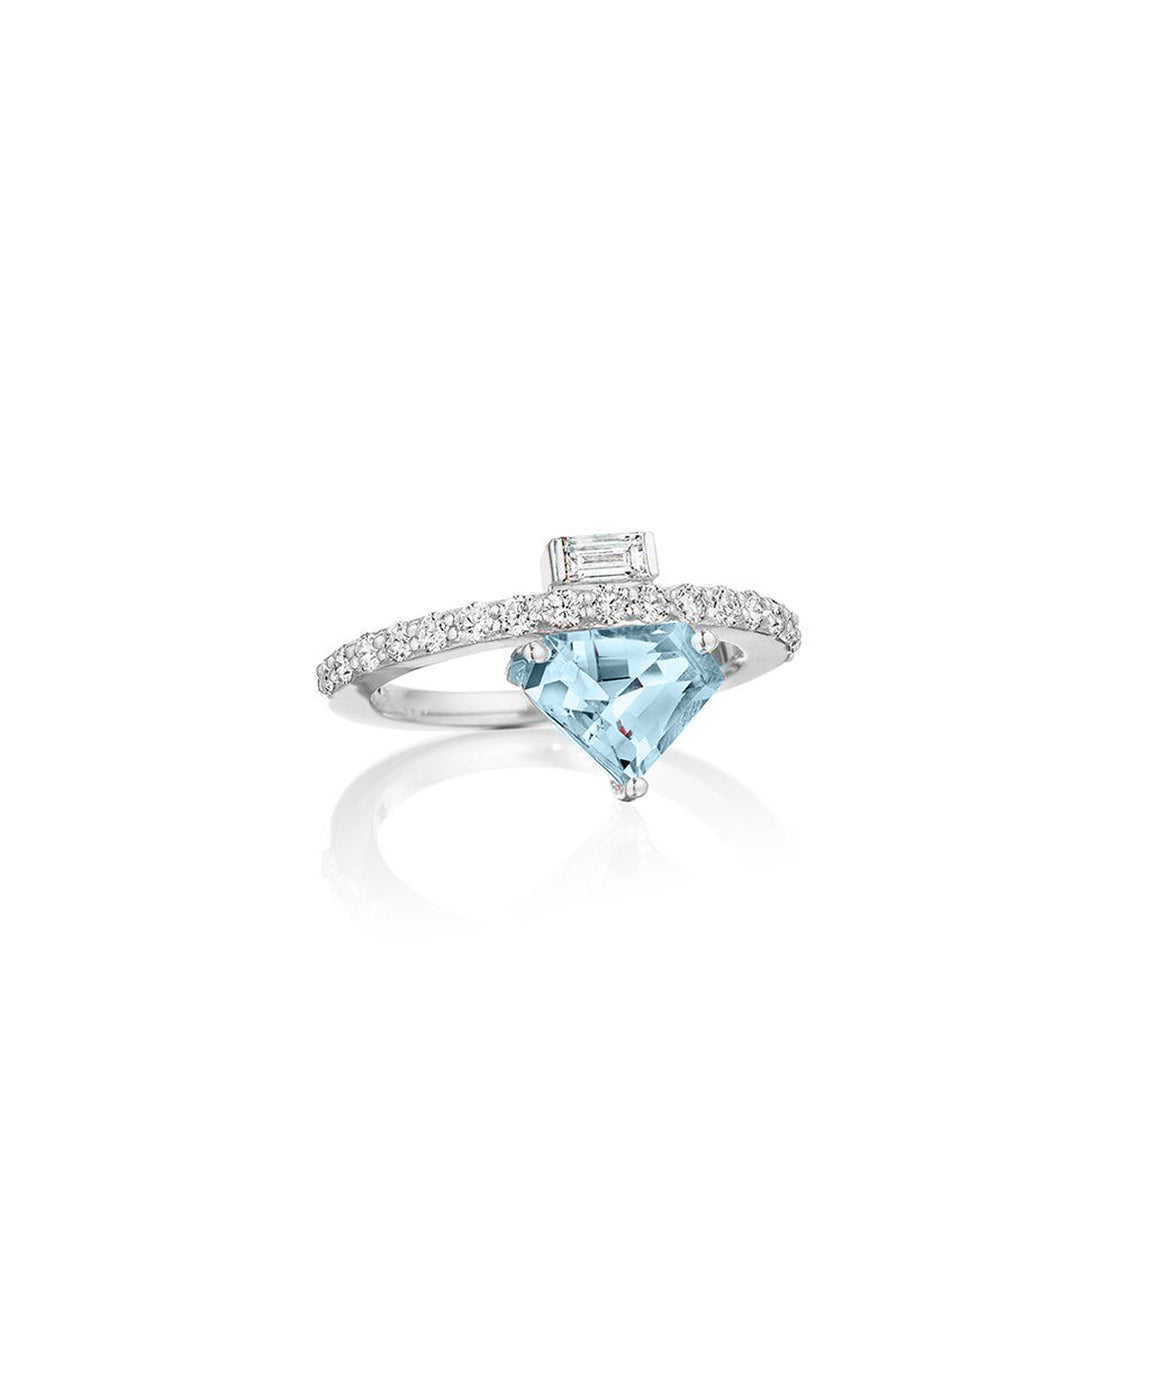 Aquamarine ring and white gold - Lesley Ann Jewels